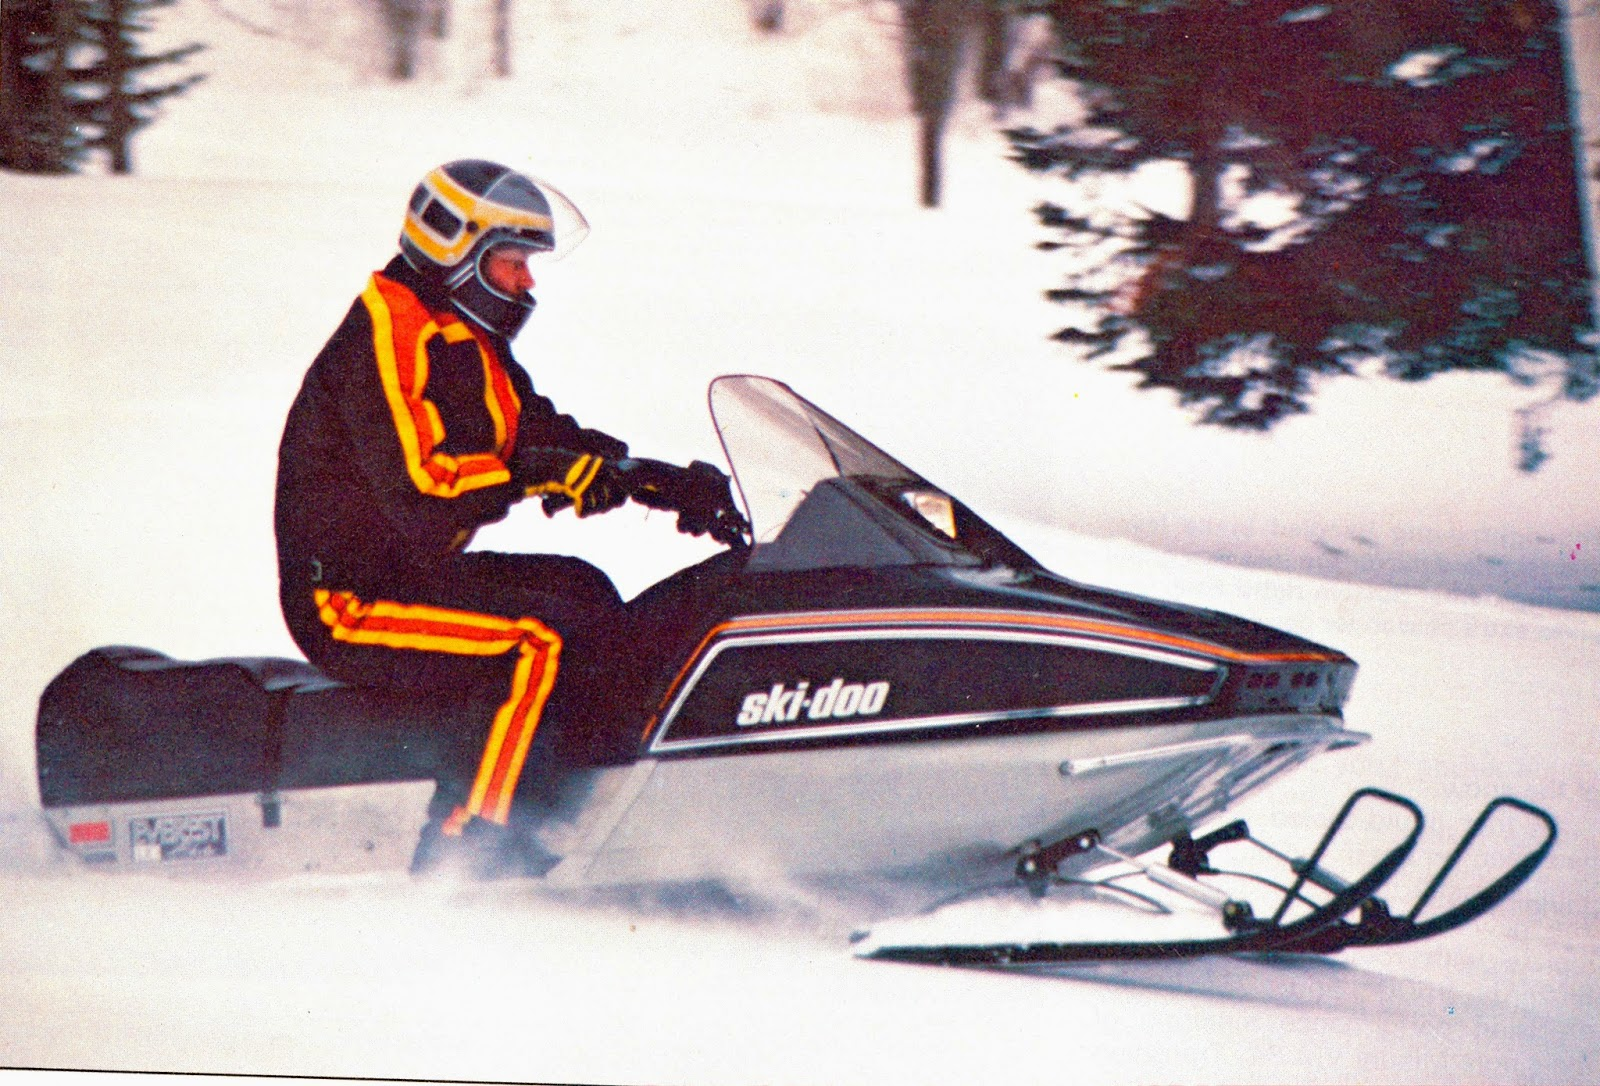 CLASSIC SNOWMOBILES OF THE PAST: THE 1980 SKI-DOO EVEREST L/C